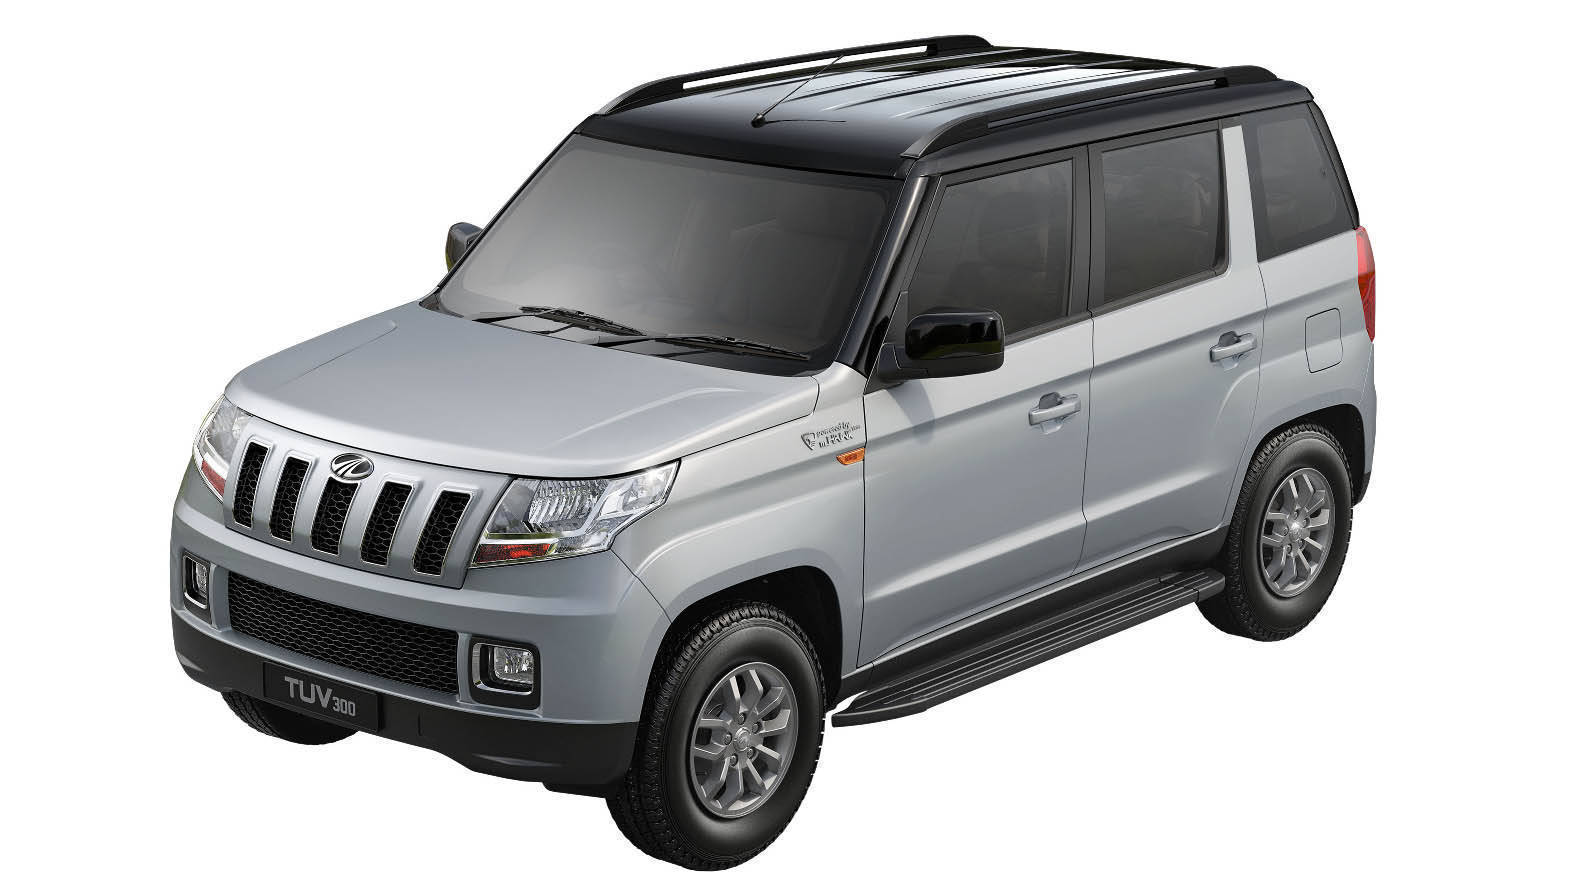 Mahindra TUV300 gets new dual-tone colour shade